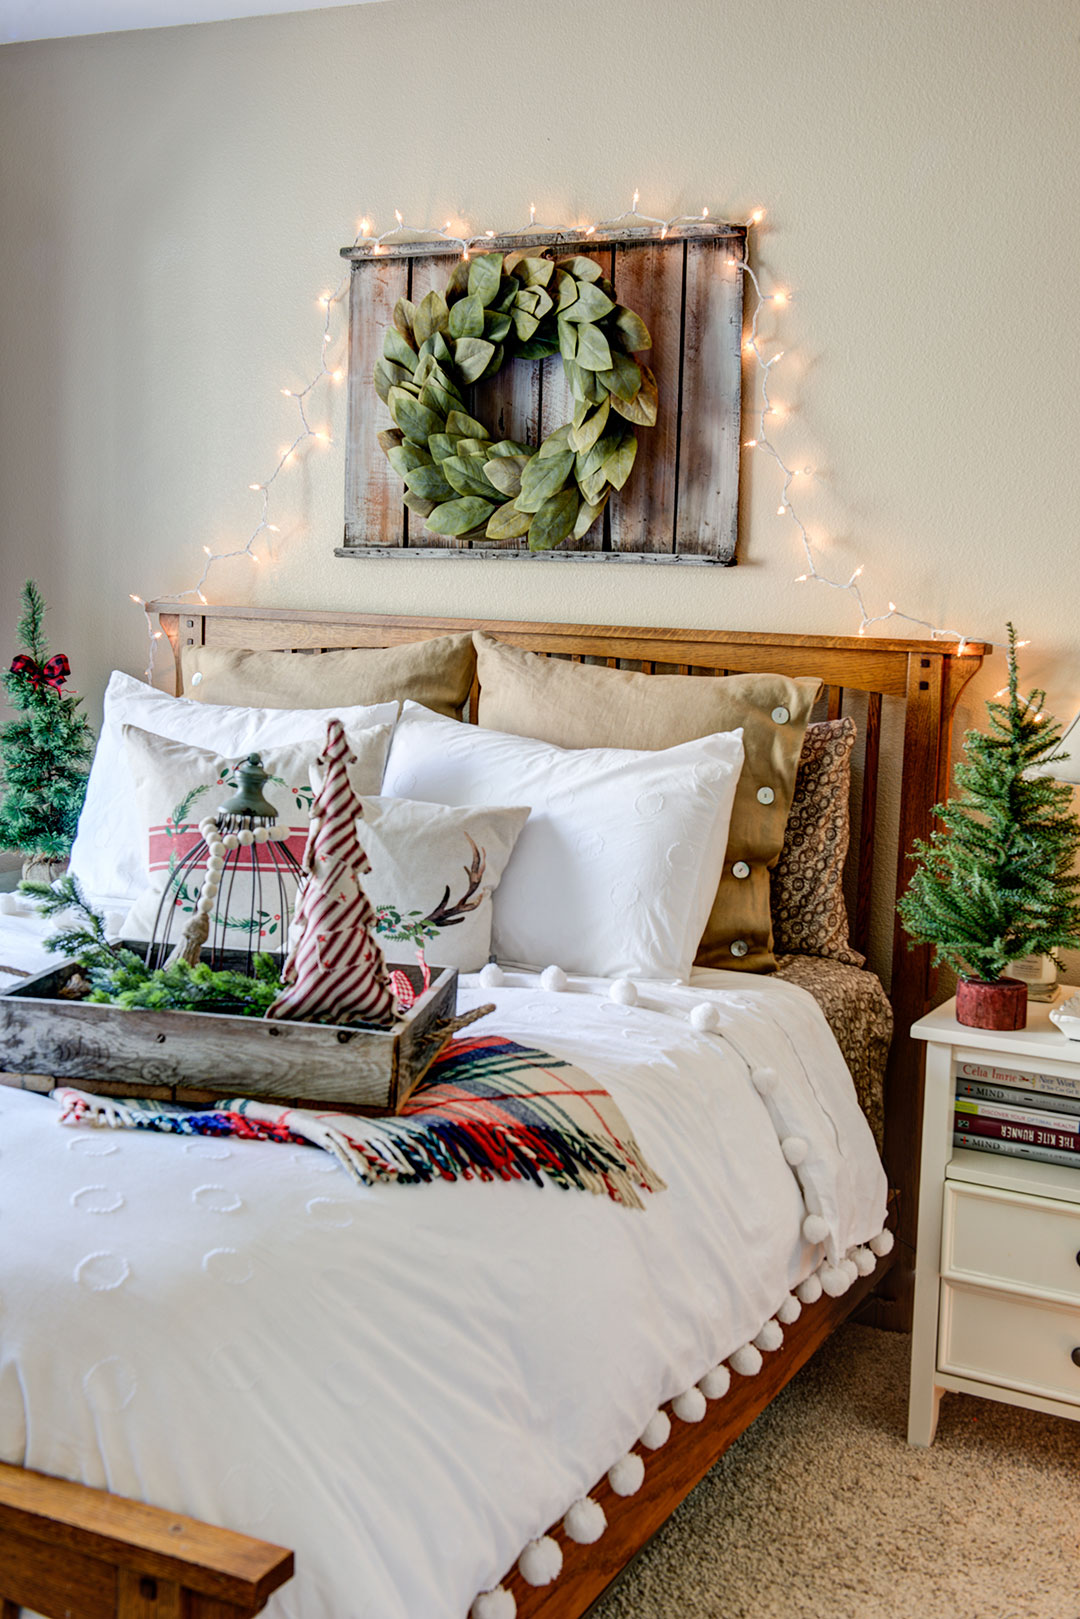 Guest bedroom decorated for Christmas overnight visitors